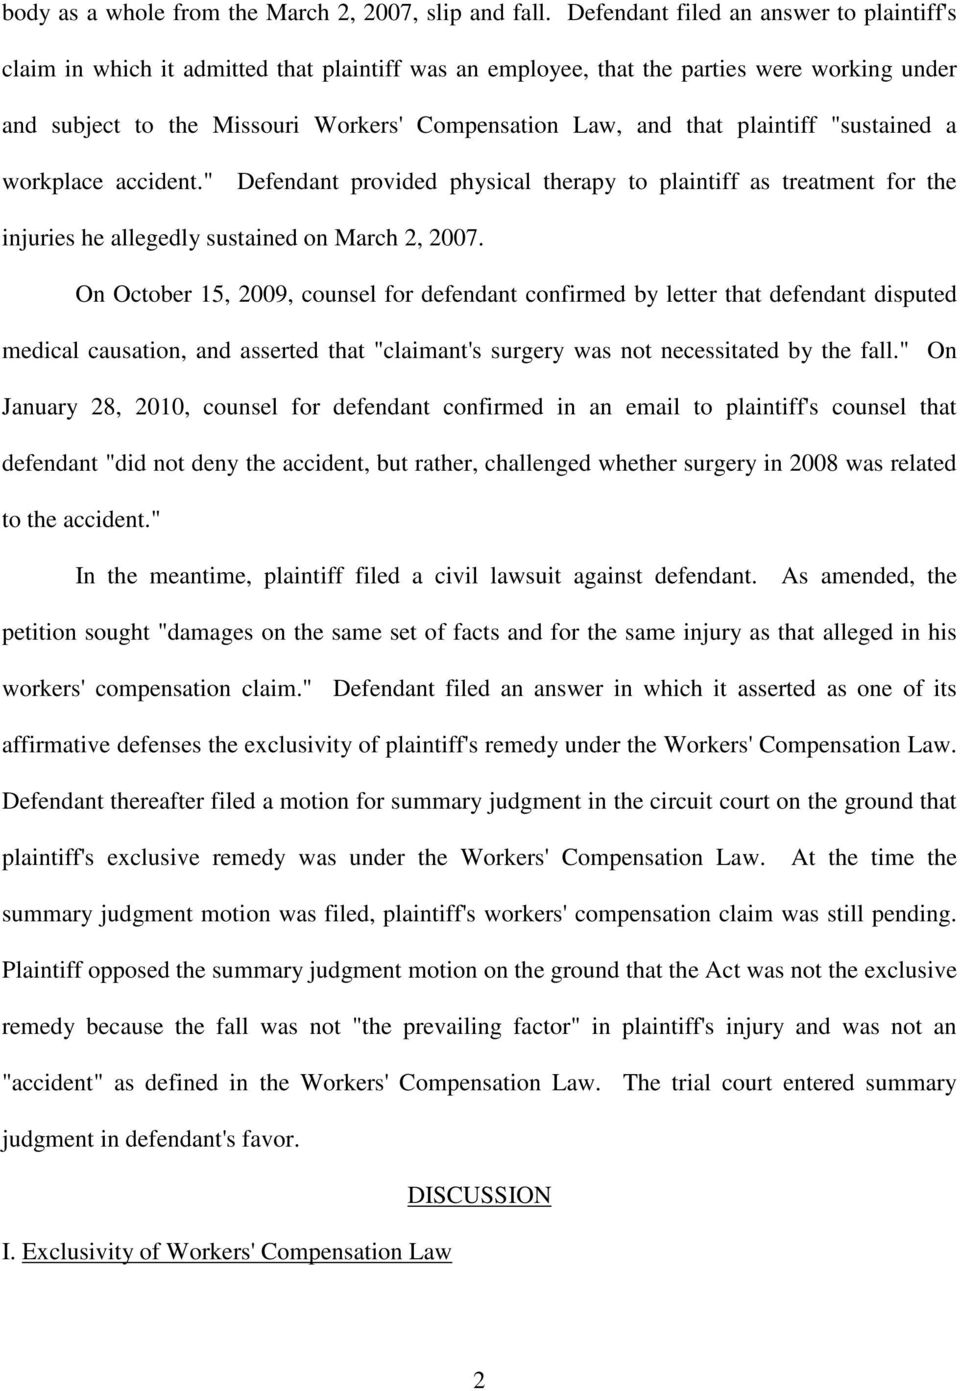 "plaintiff ""sustained a workplace accident."" Defendant provided physical therapy to plaintiff as treatment for the injuries he allegedly sustained on March 2, 2007."